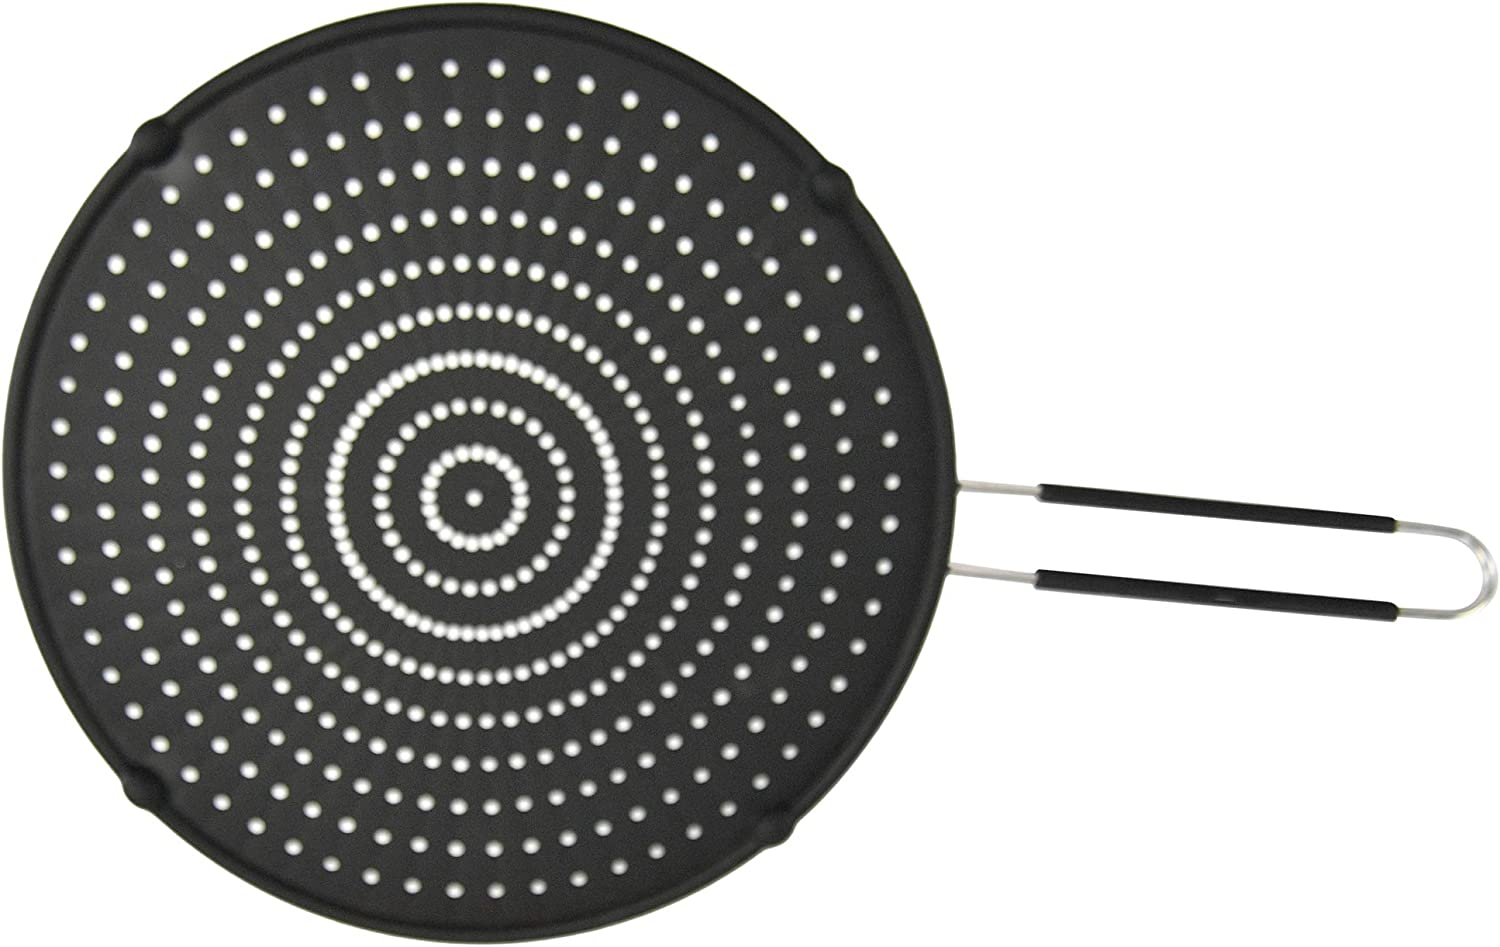 HOME-X Silicone Splatter Guard for Frying Pan, Grease Shield, Cooking Screen for Frying and Oil Spatter, Skillet Splatter Screen, 19 ¾